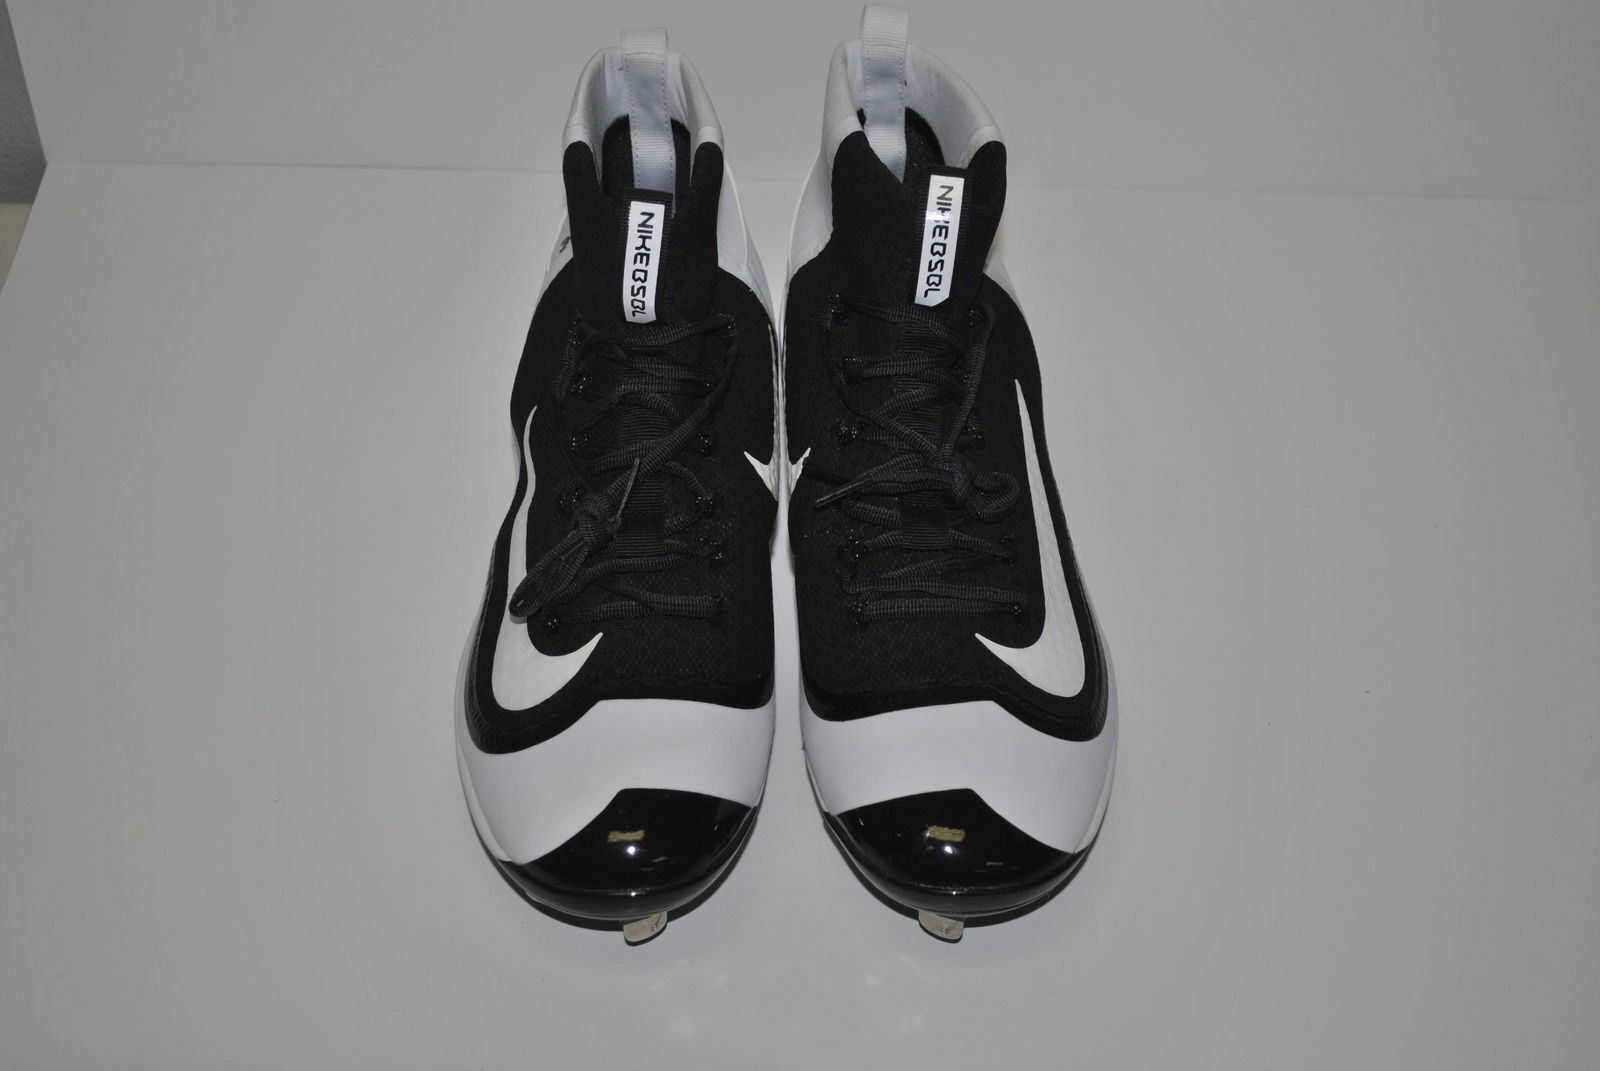 Nike Huarache 2K Filth Elite Mid Metal Baseball Cleats Men Comfortable